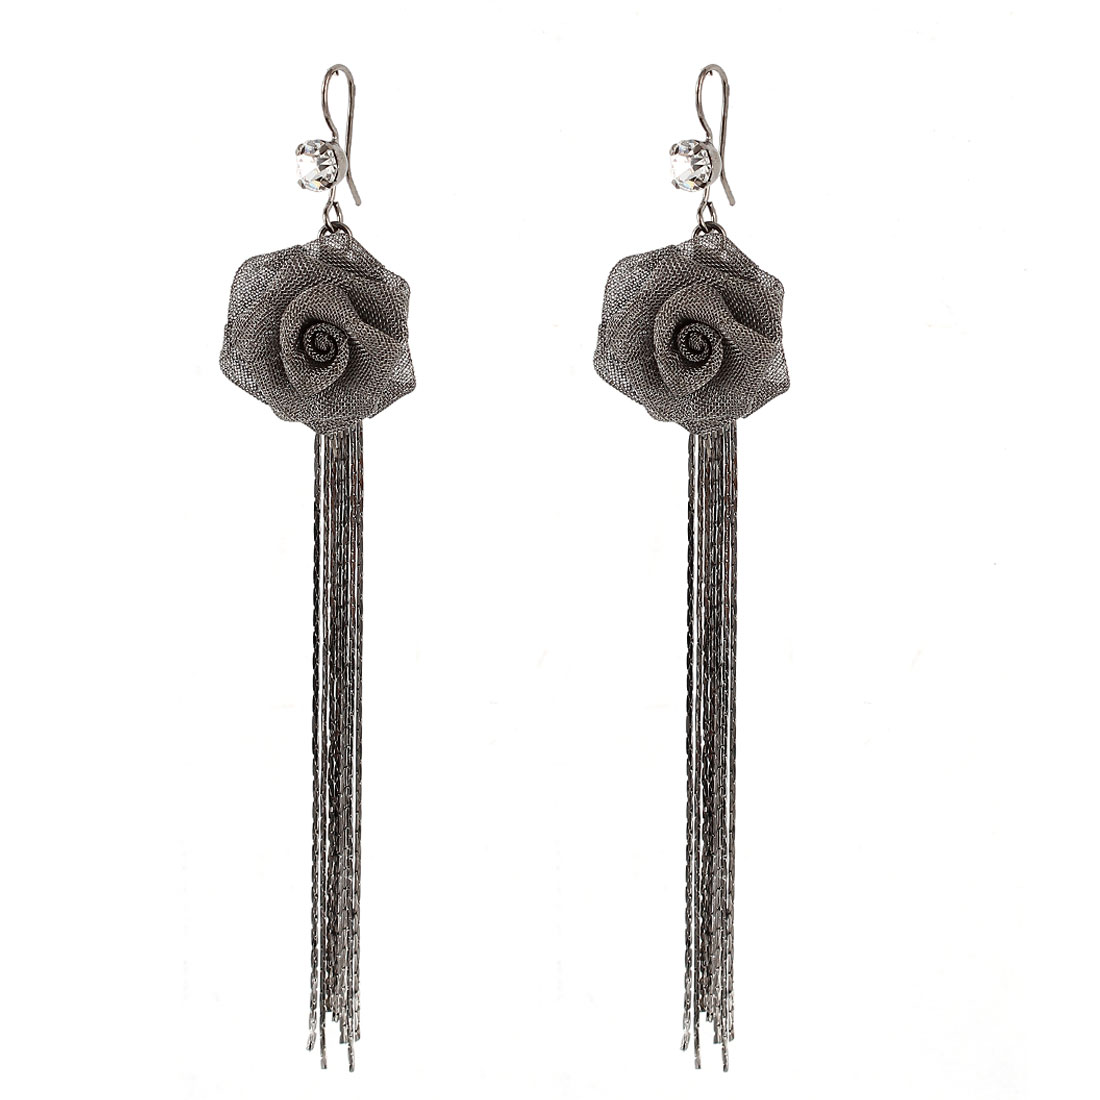 Lady Dark Gray Nylon Meshy Flower Pandent Adorn Metal Chain Tassels Dangling Hook Earrings Pair